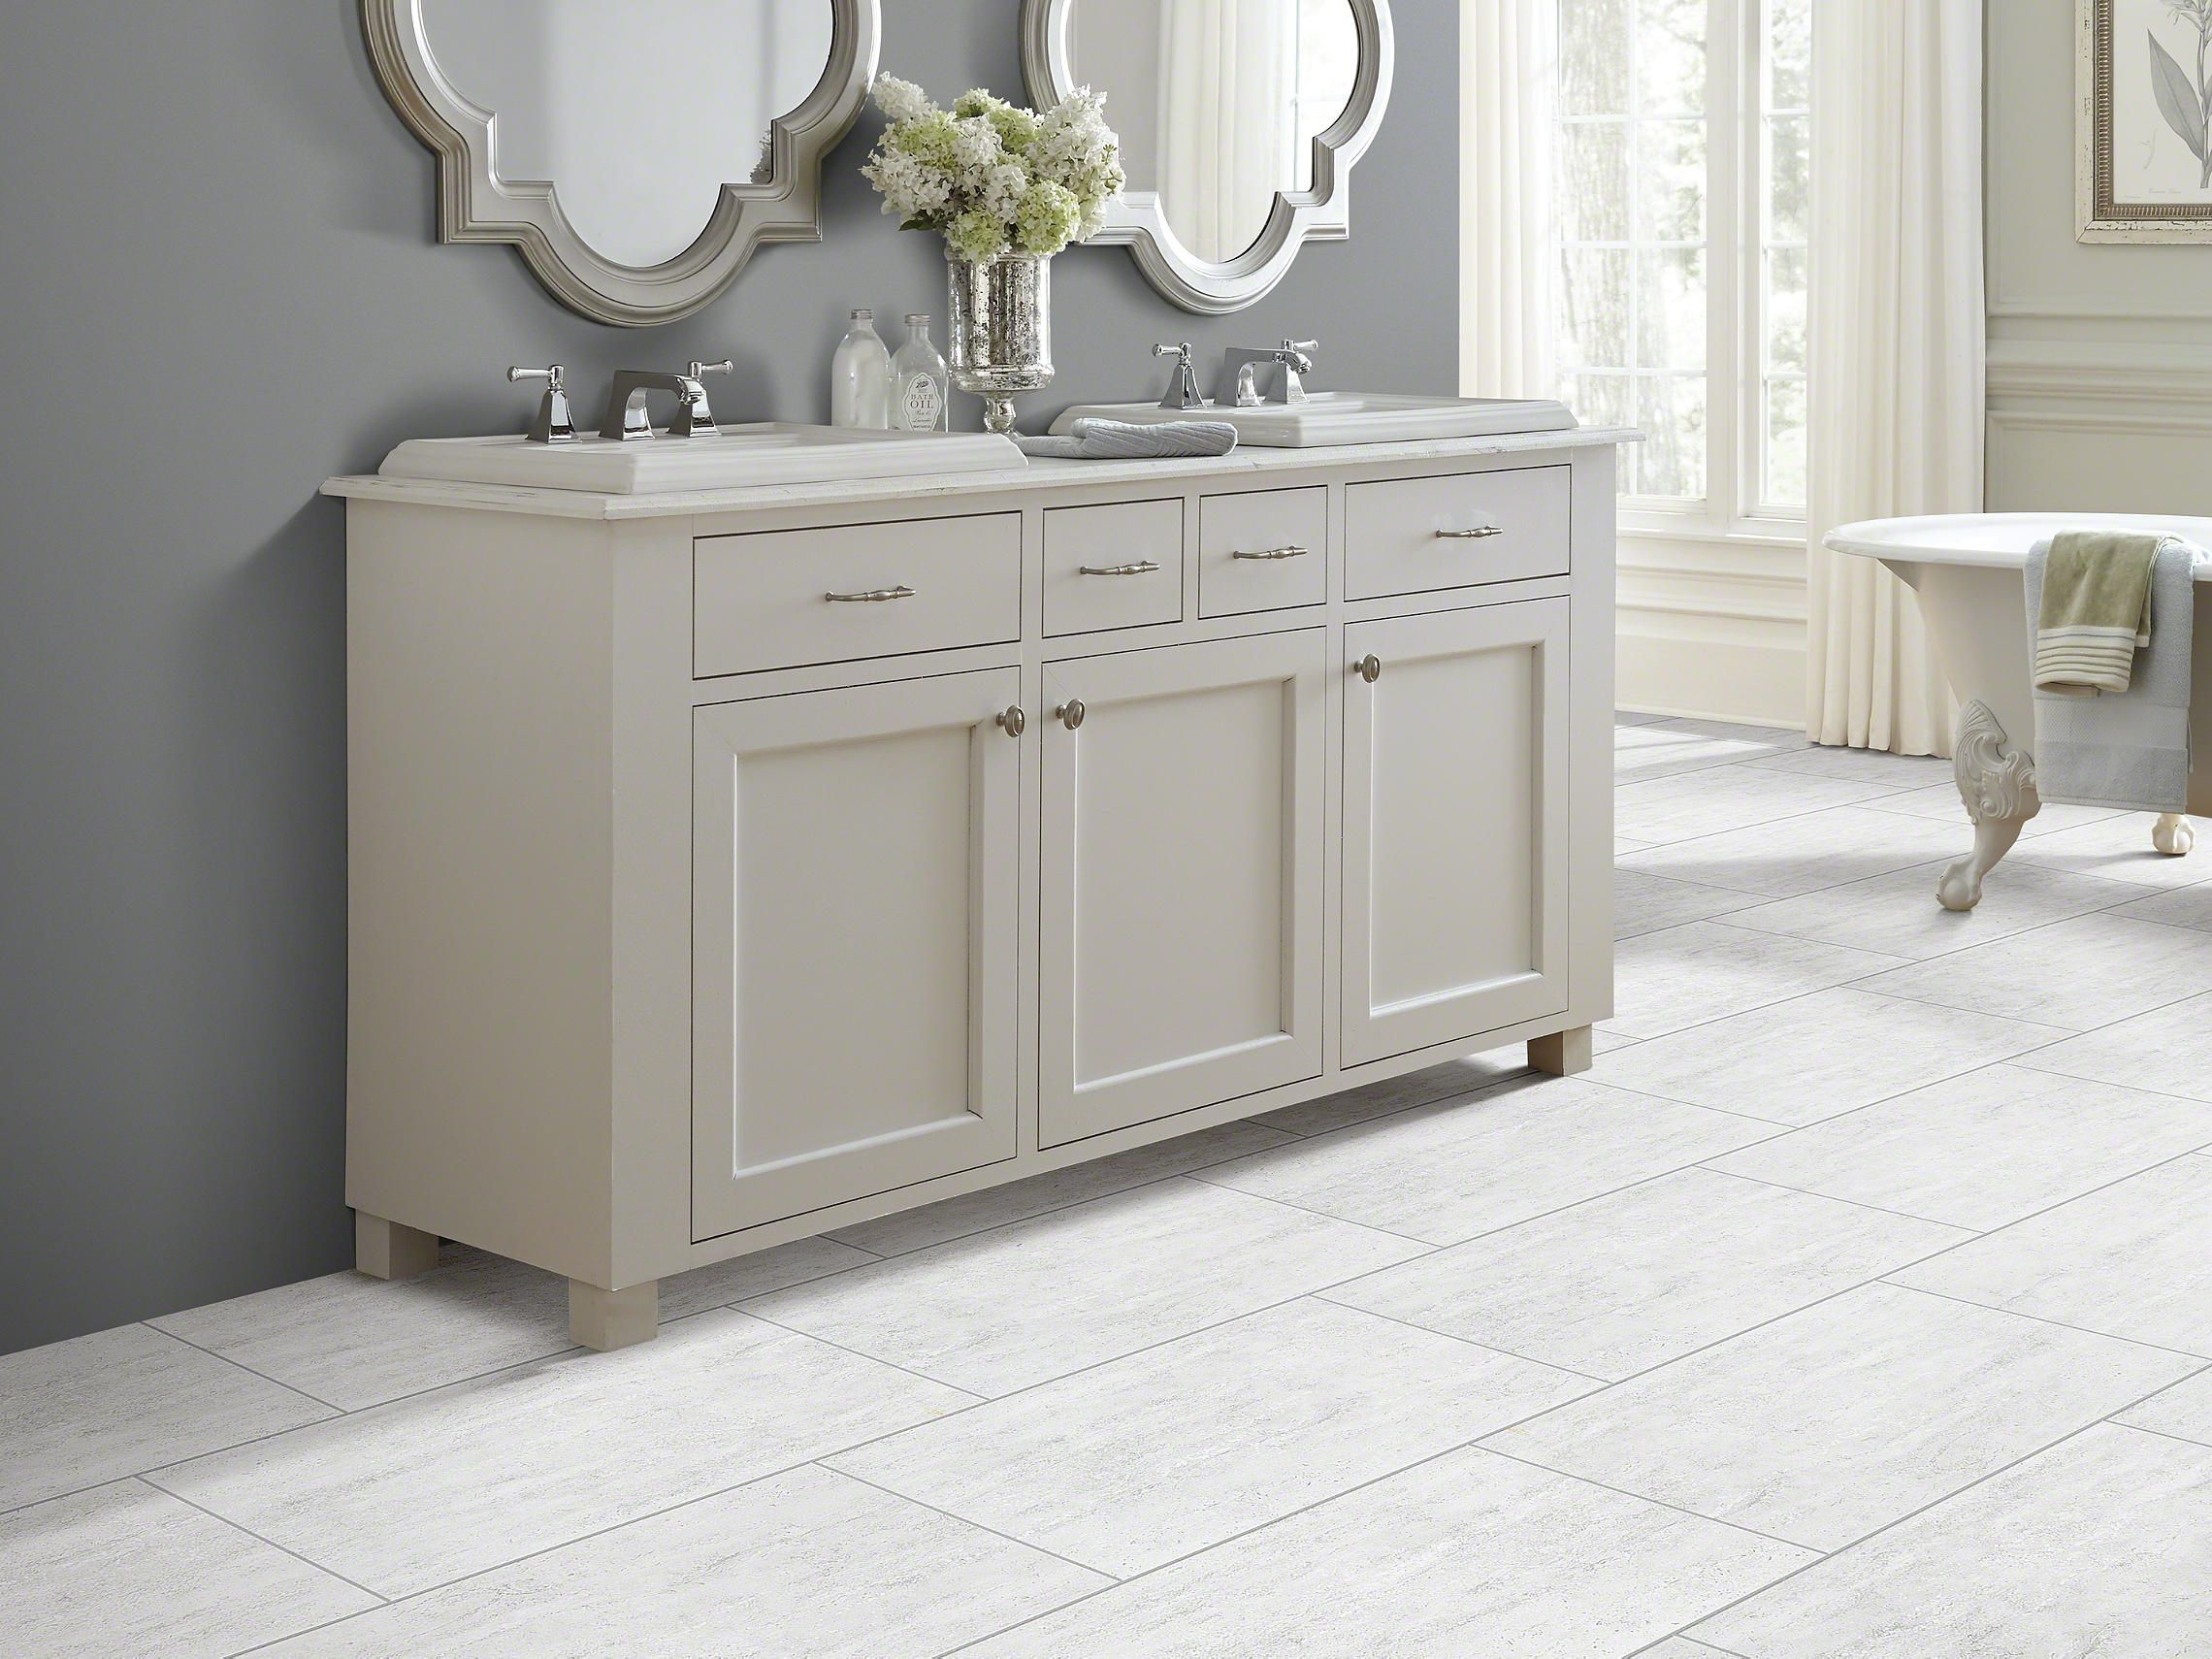 Classico 12x24 light grey room view ceramic tile pinterest shaws classico light grey tile and stone for flooring and wall projects from backsplashes to fireplaces wide variety of tile flooring and wall tile doublecrazyfo Choice Image